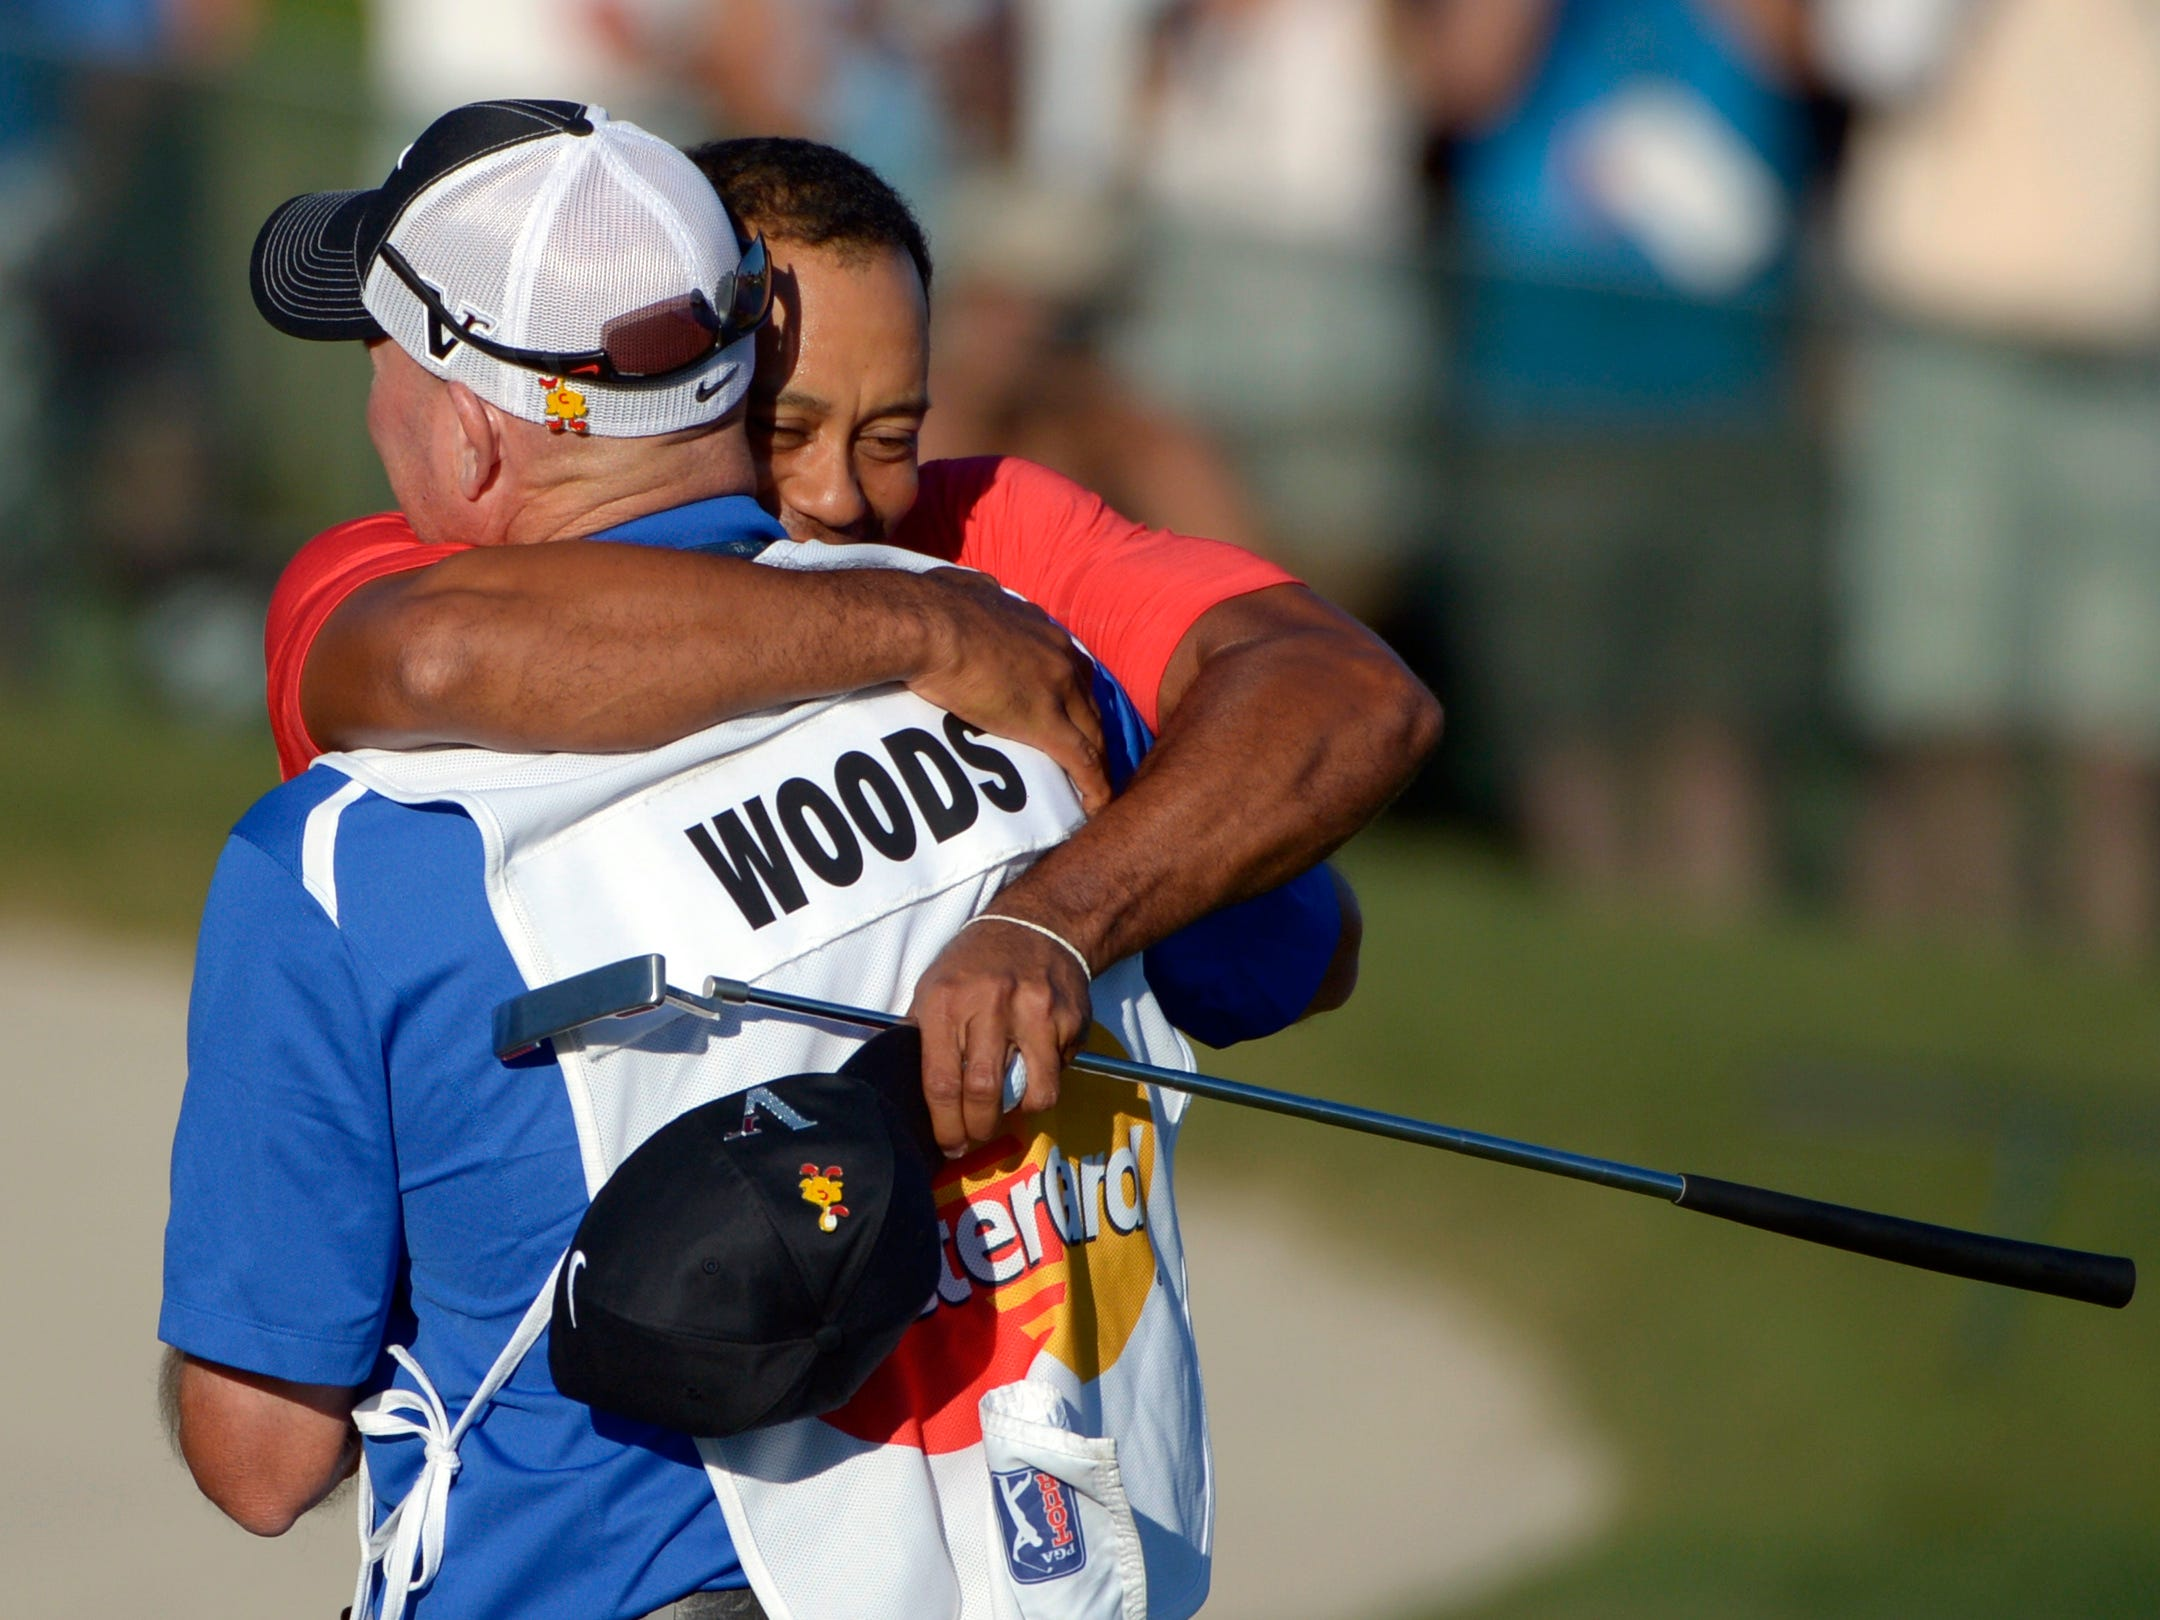 Woods wins the Arnold Palmer Invitational in March 2012 for his first PGA Tour victory since the scandal in his personal life. Here he hugs his caddie Joe LaCava.